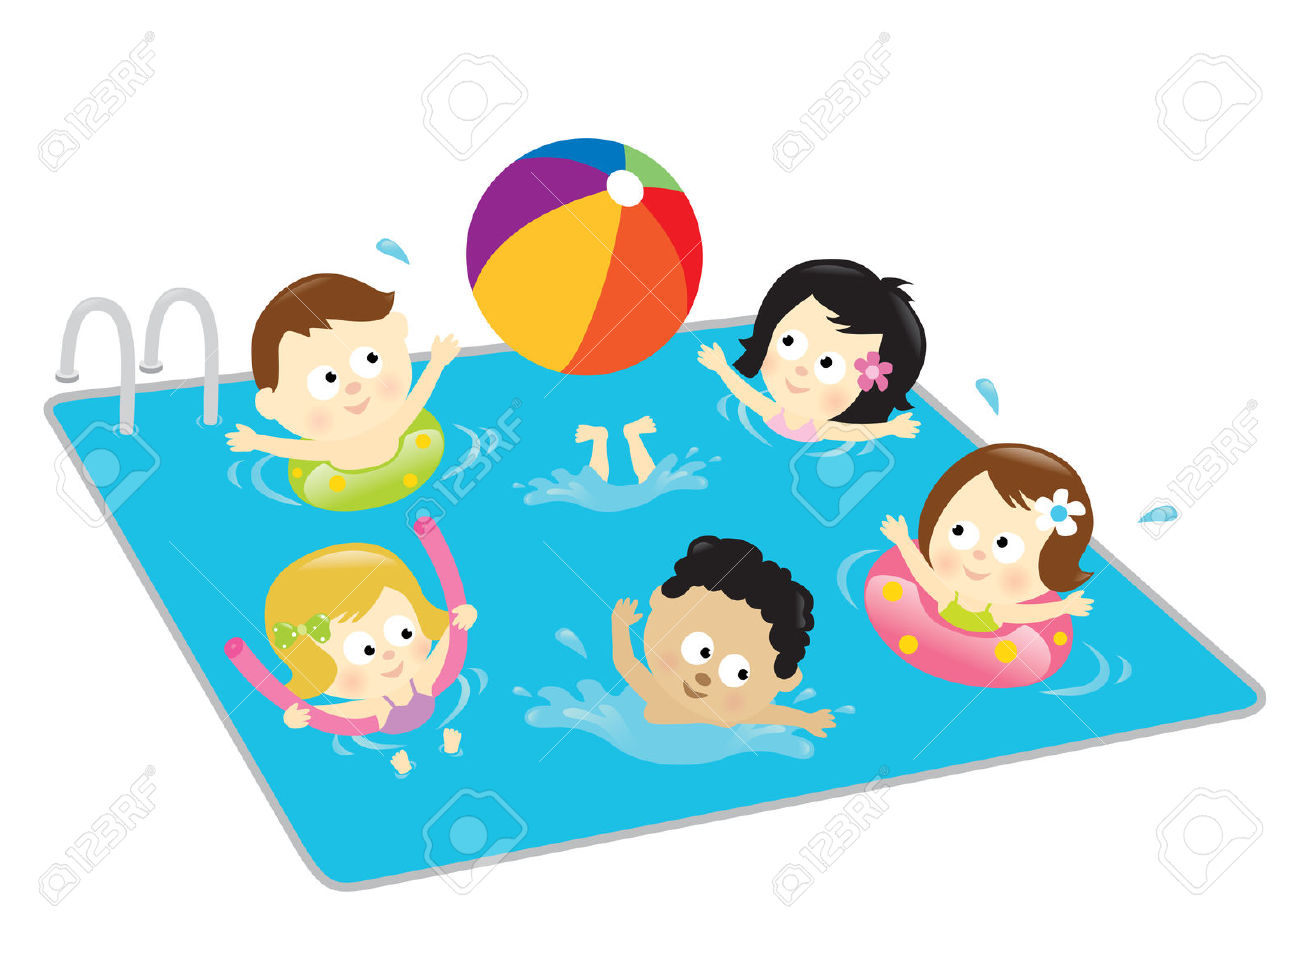 Swiming clipart free clip art royalty free stock 96+ Free Swimming Clipart | ClipartLook clip art royalty free stock